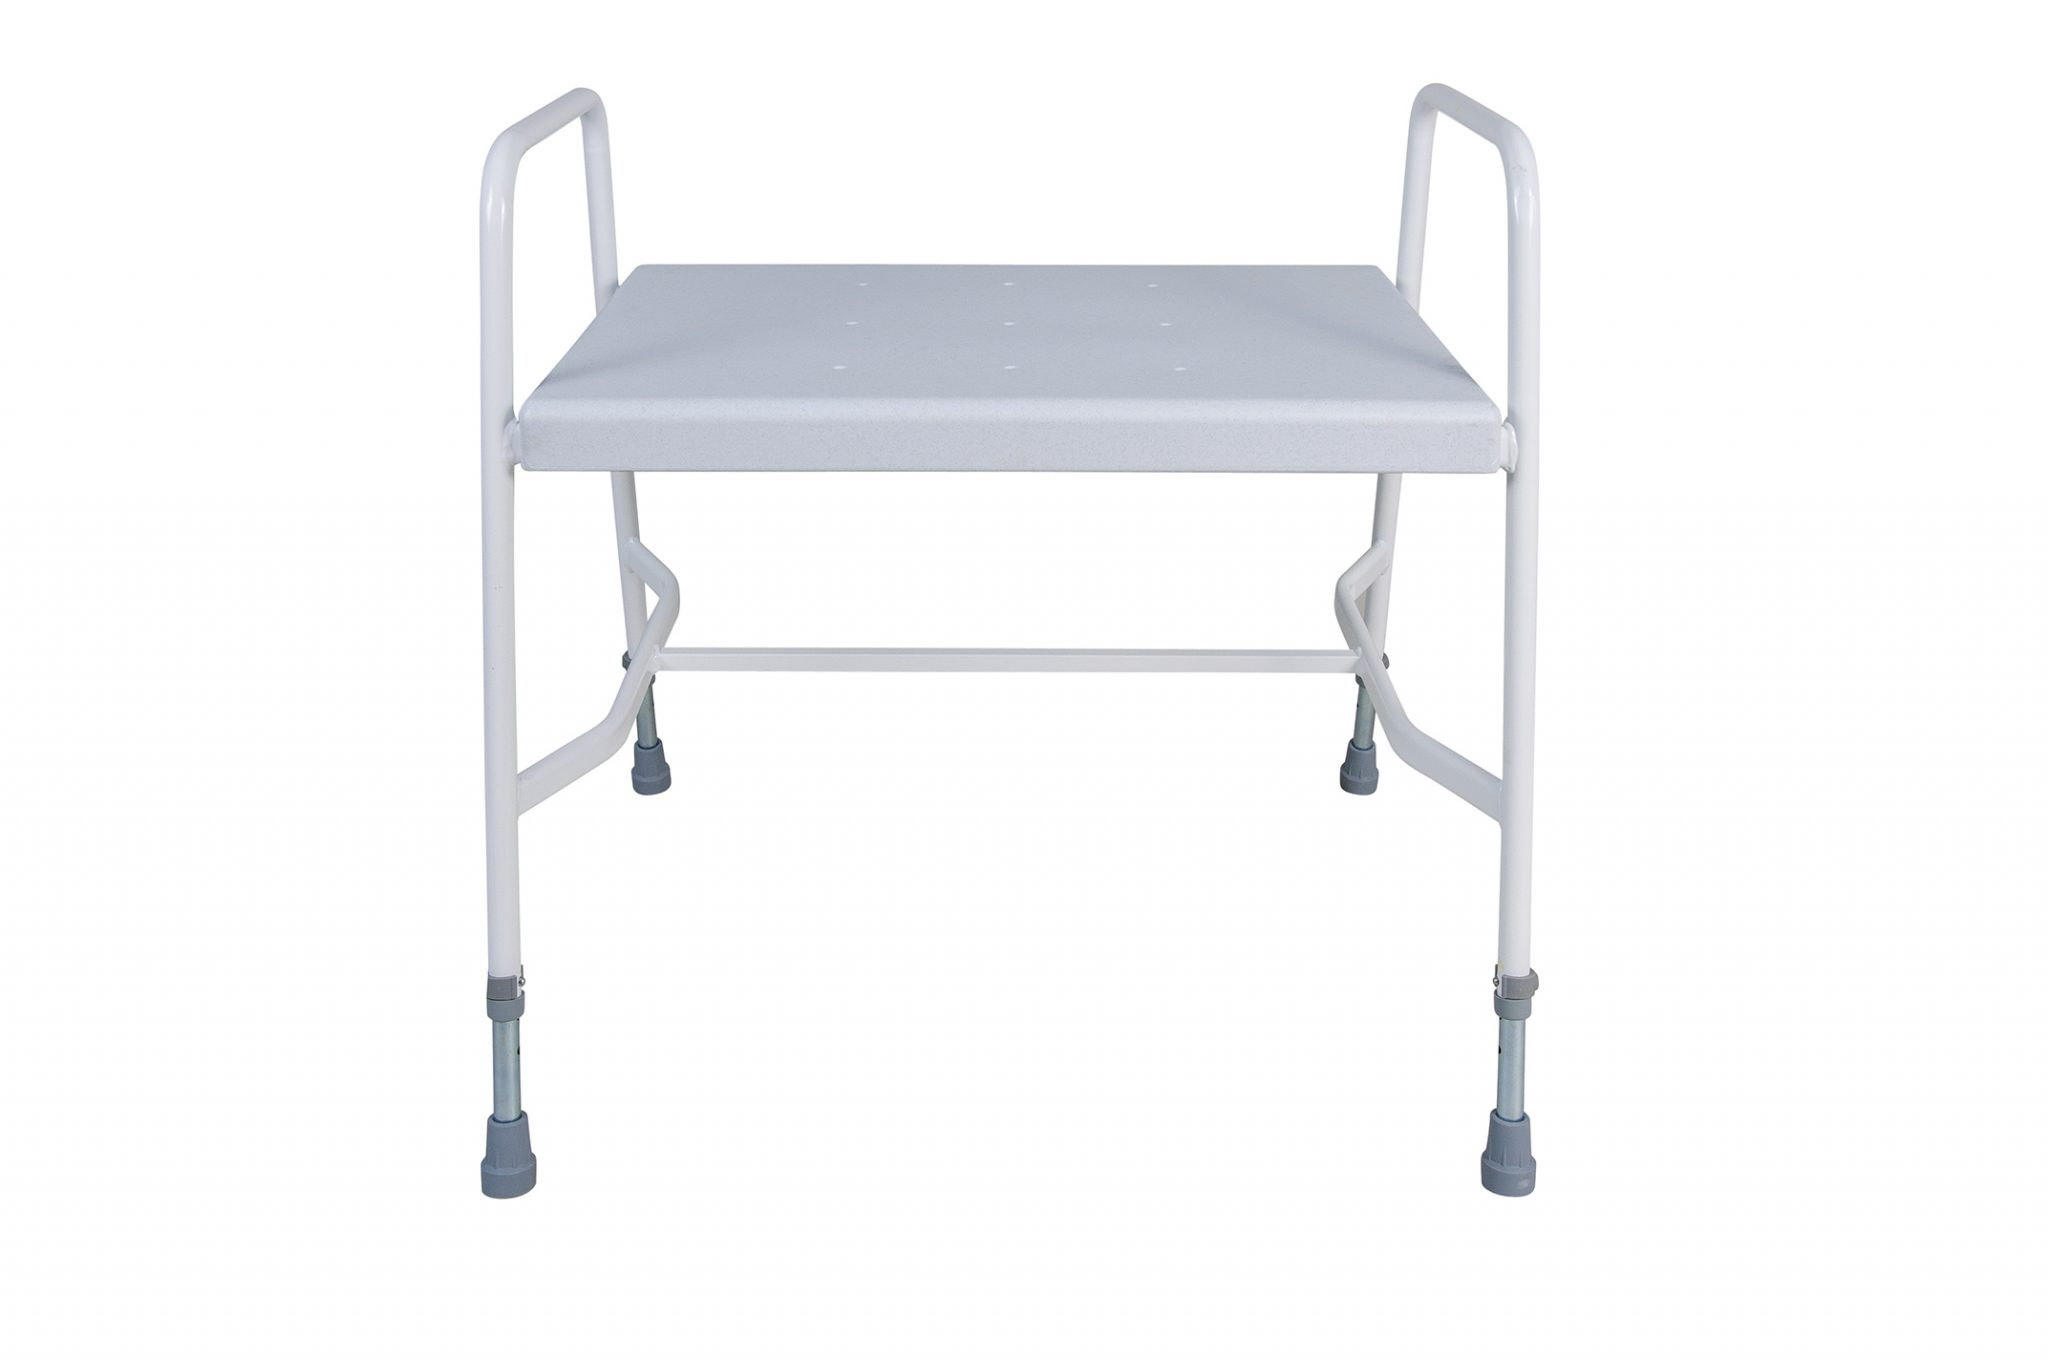 uk tall shower ea stool large click expand cheaply buy essential aids online to at adjustable